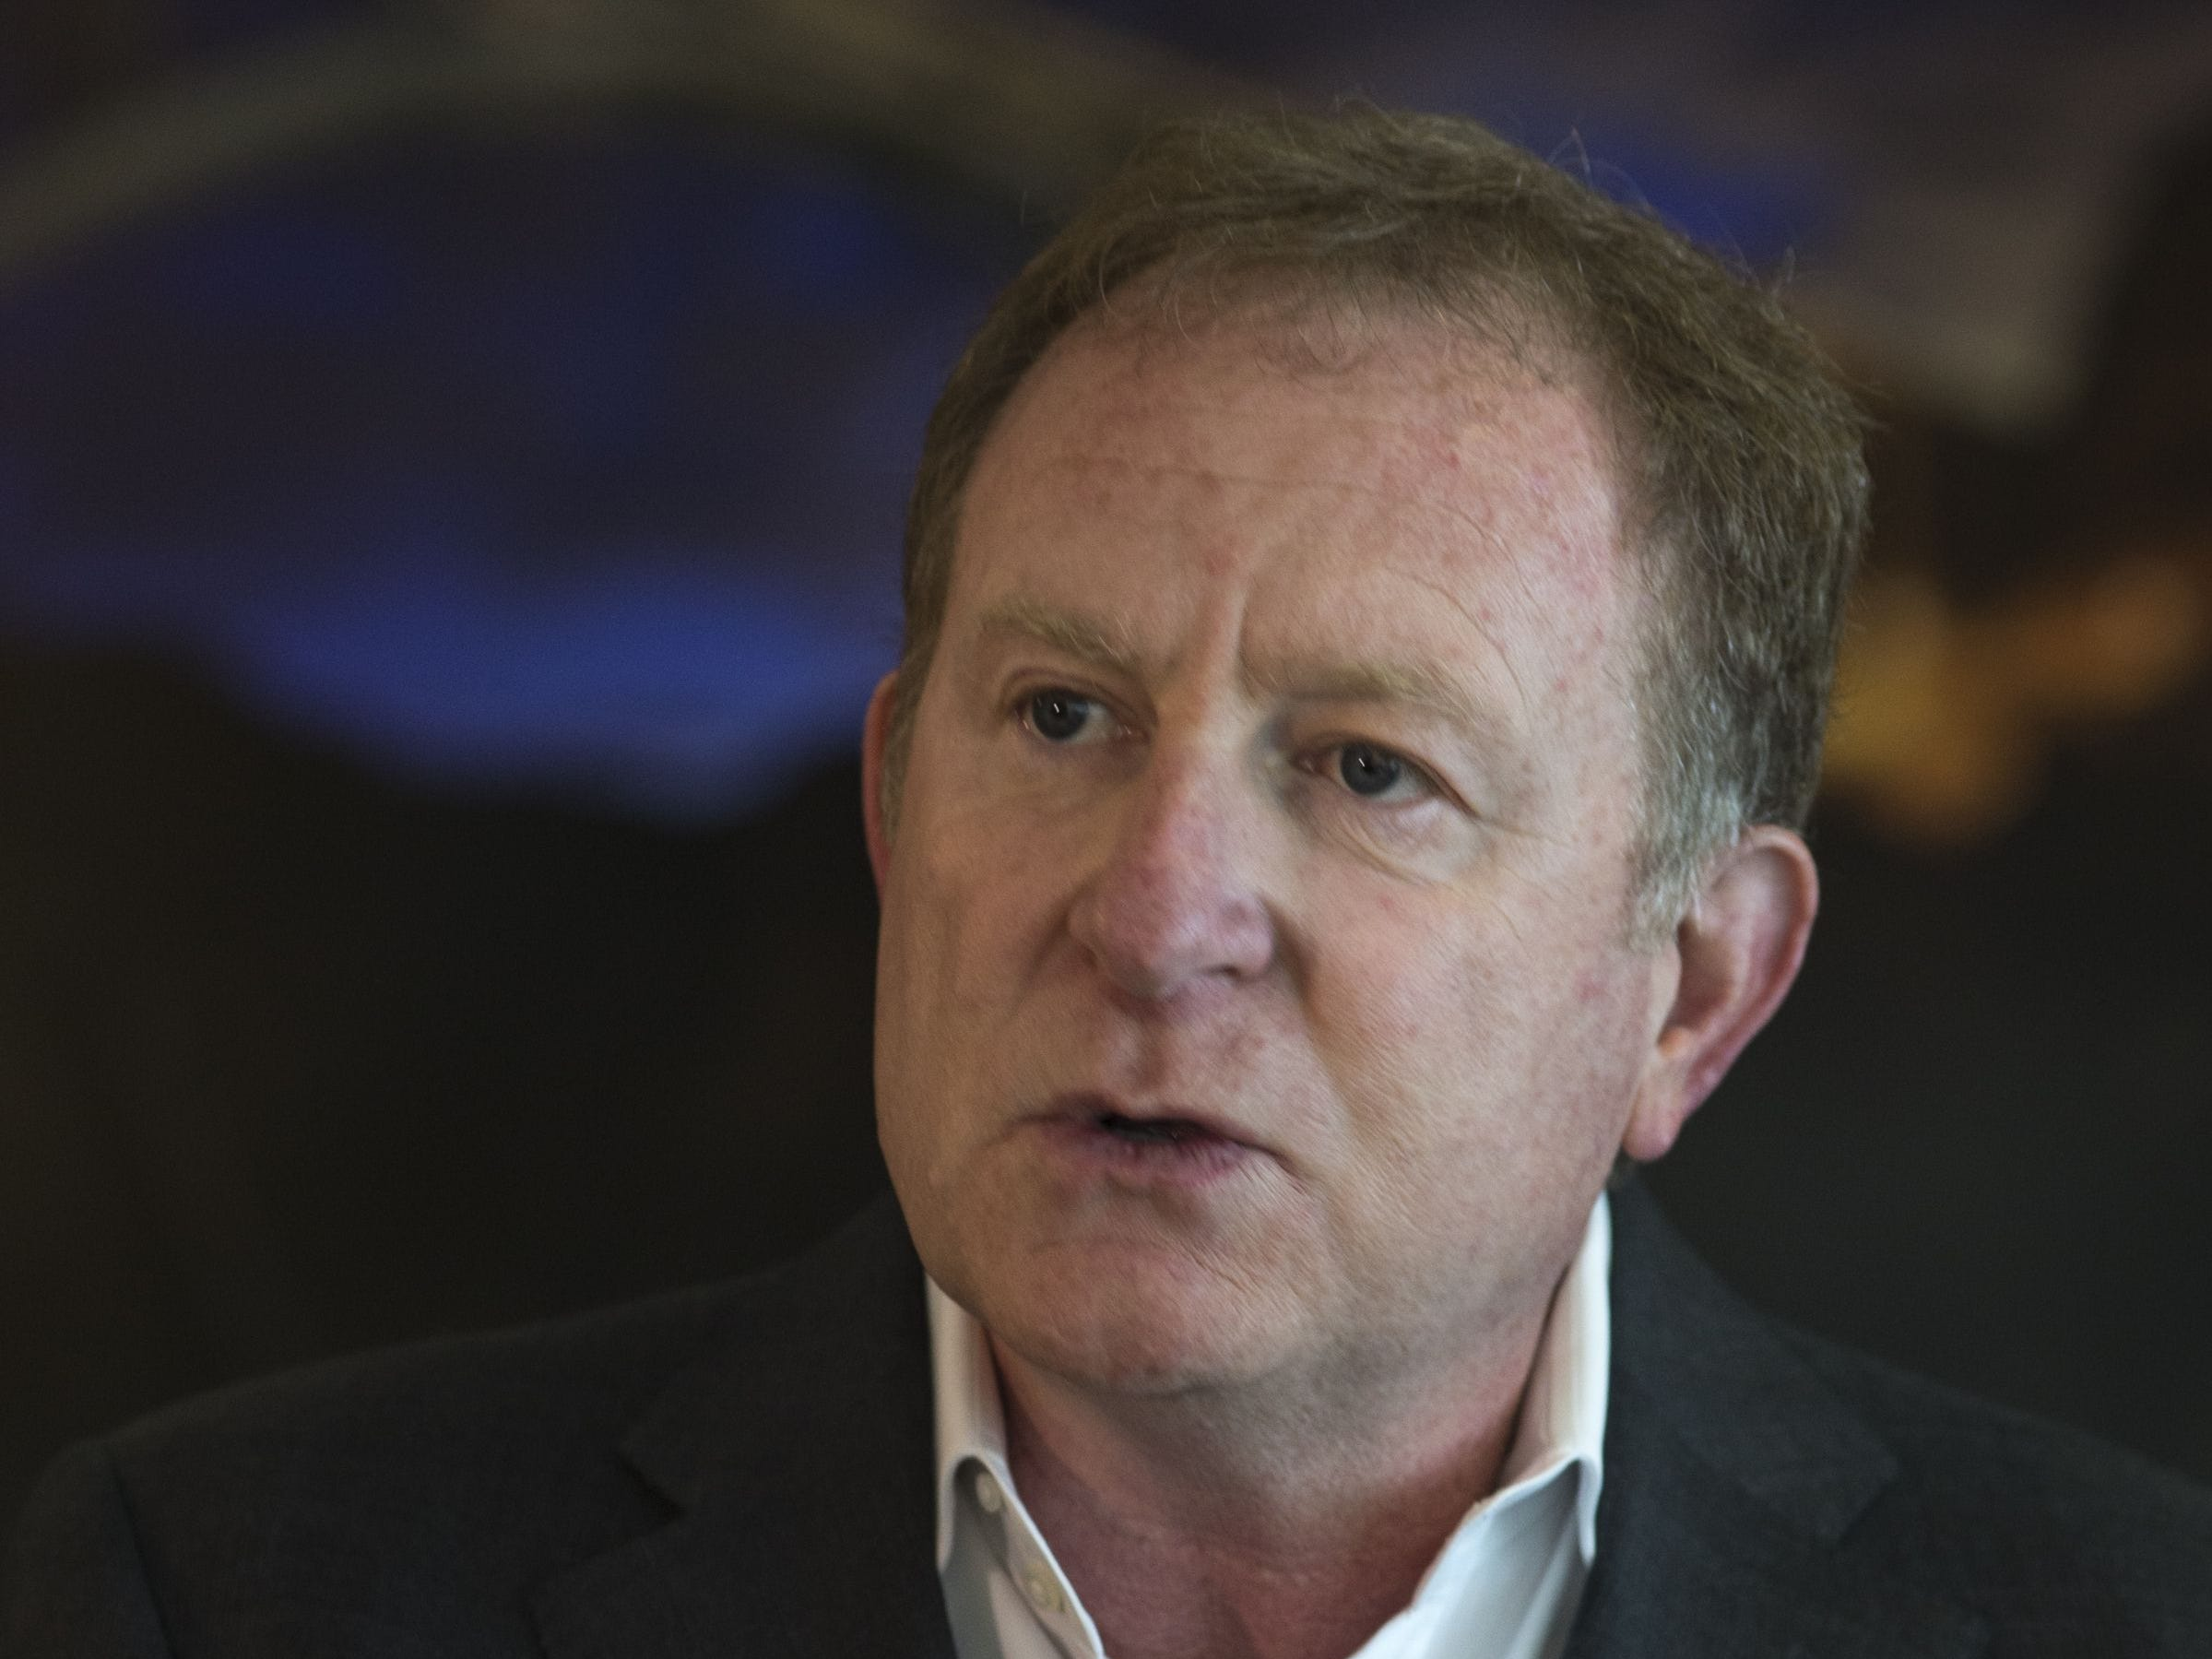 Western Alliance Bancorporation's Robert  Sarver (executive chairman): Summary compensation: $5,745,870. Adjusted compensation: $4,678,032. TTM profit: $353 million. TTM revenue: $862 million. 2017 stock: 16.2 percent. Capitalization: $6 billion.